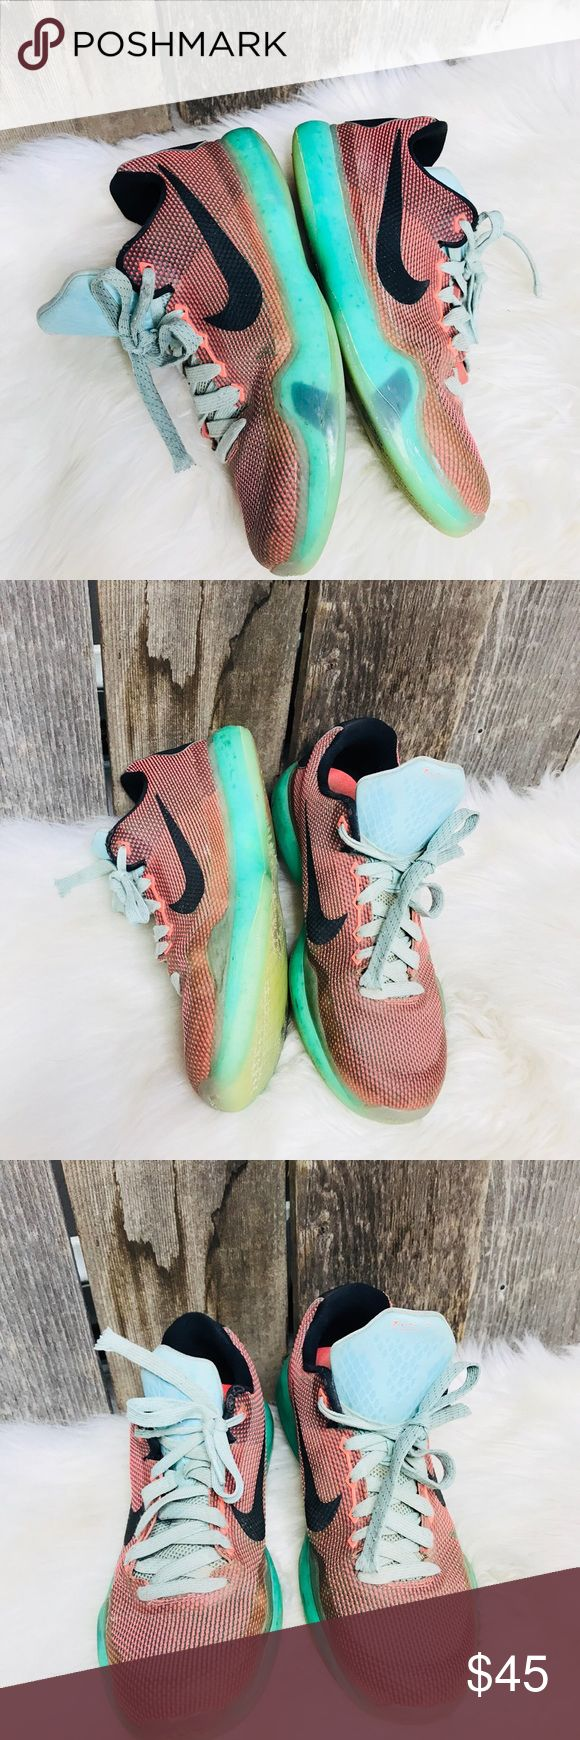 Nike KOBE Easter Basketball Sneakers Size 6.5 youth  Good condition, some signs of wear Nike Shoes Sneakers